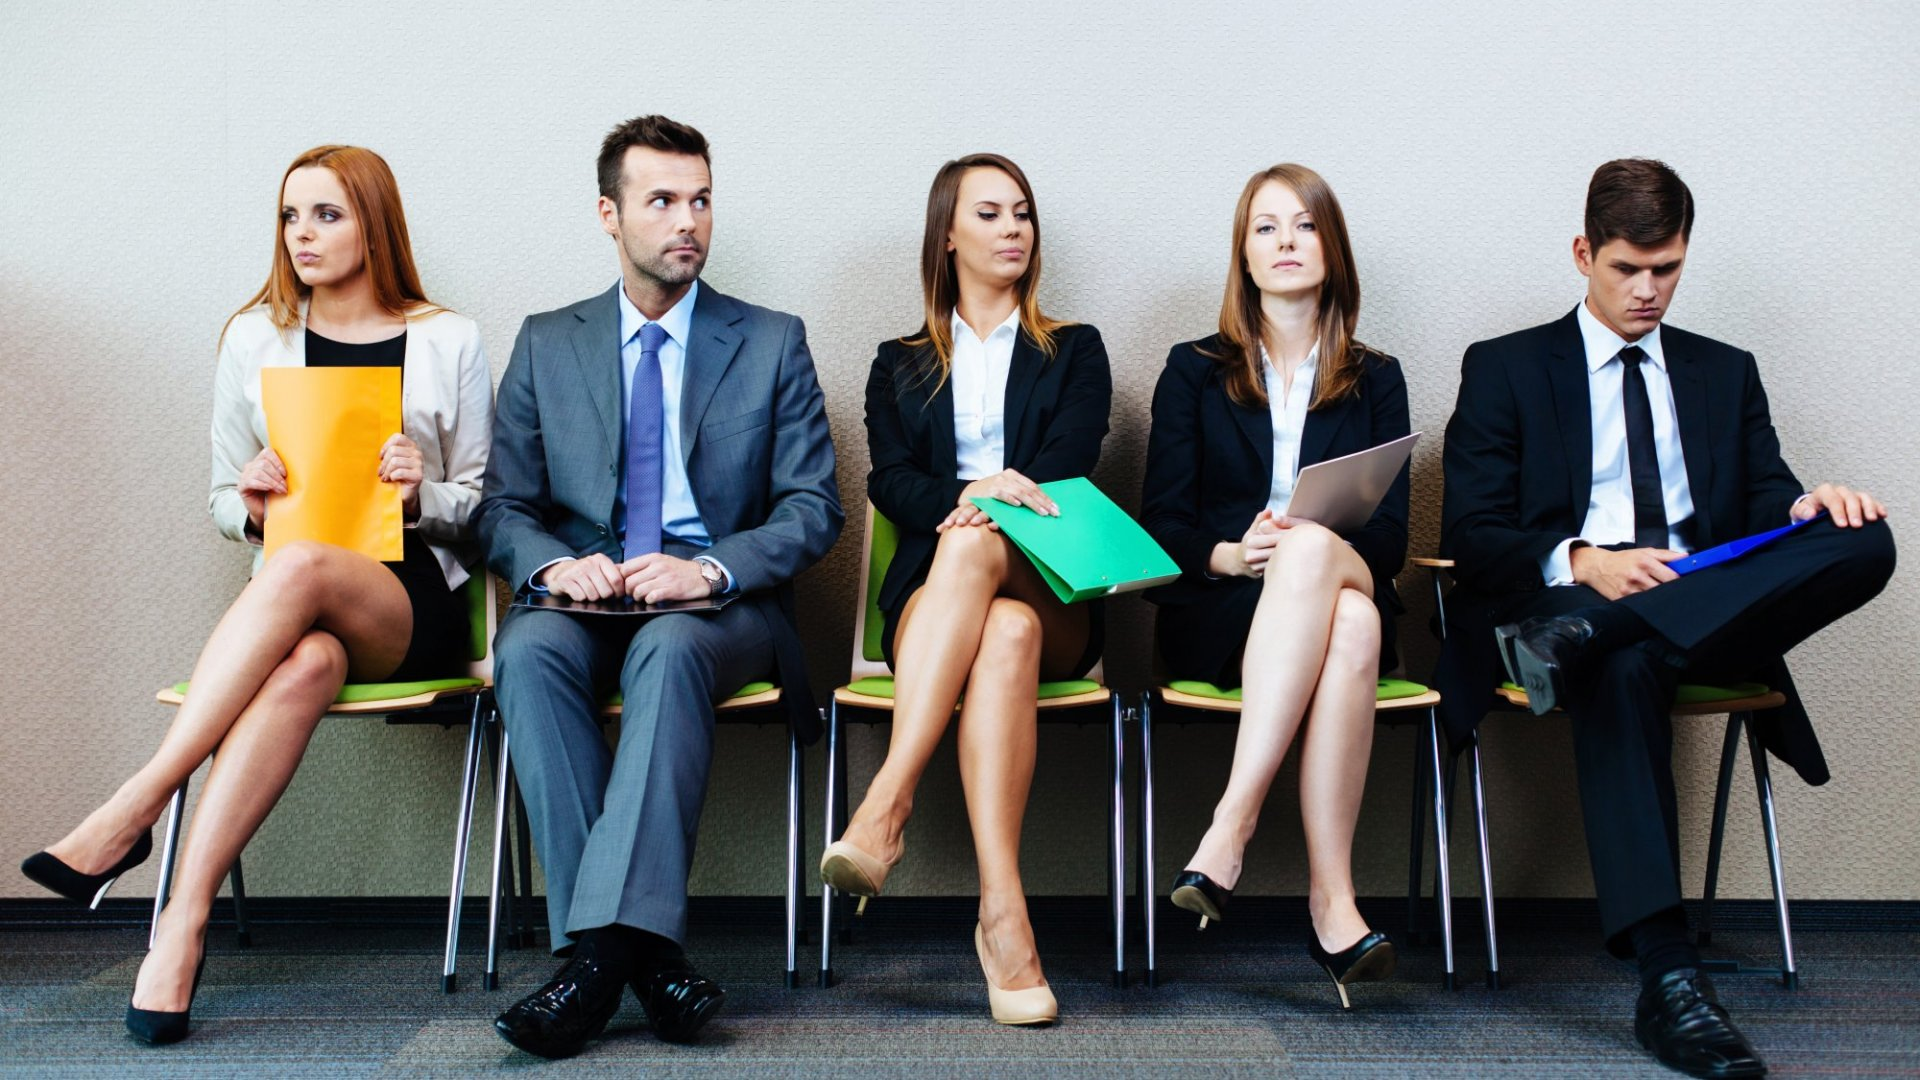 8 Standout Traits Every Interviewer Wants You to Demonstrate